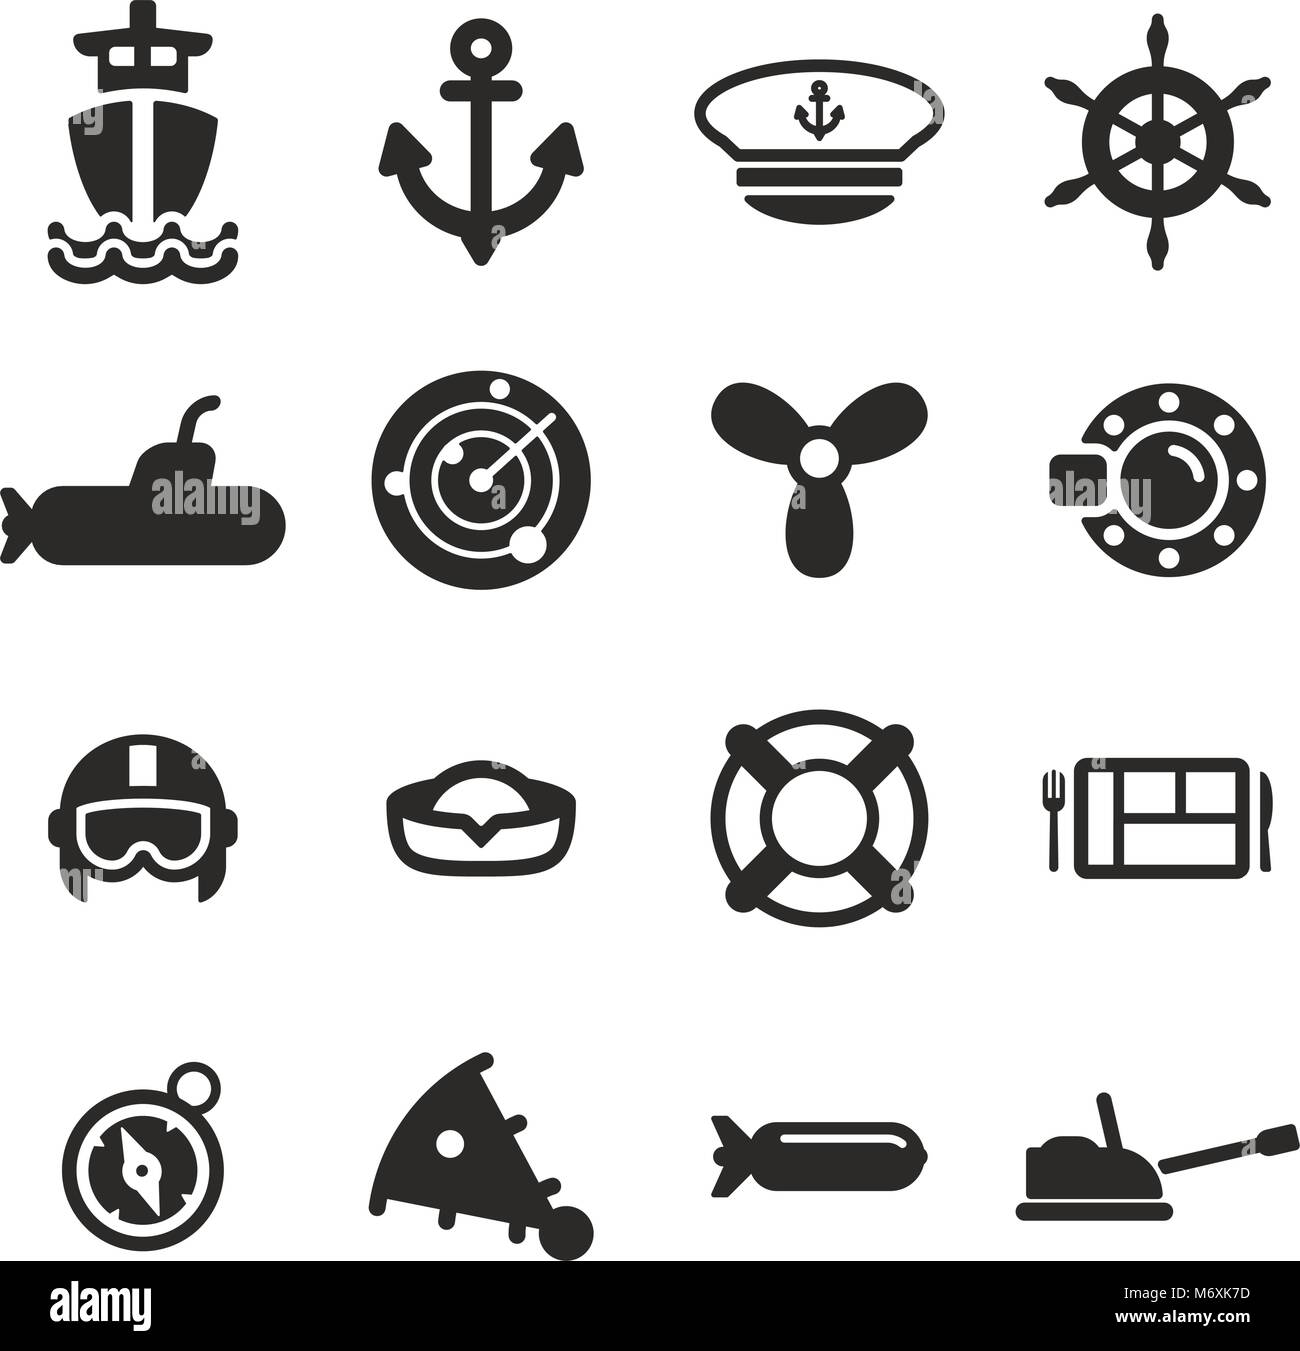 Navy Icons - Stock Vector